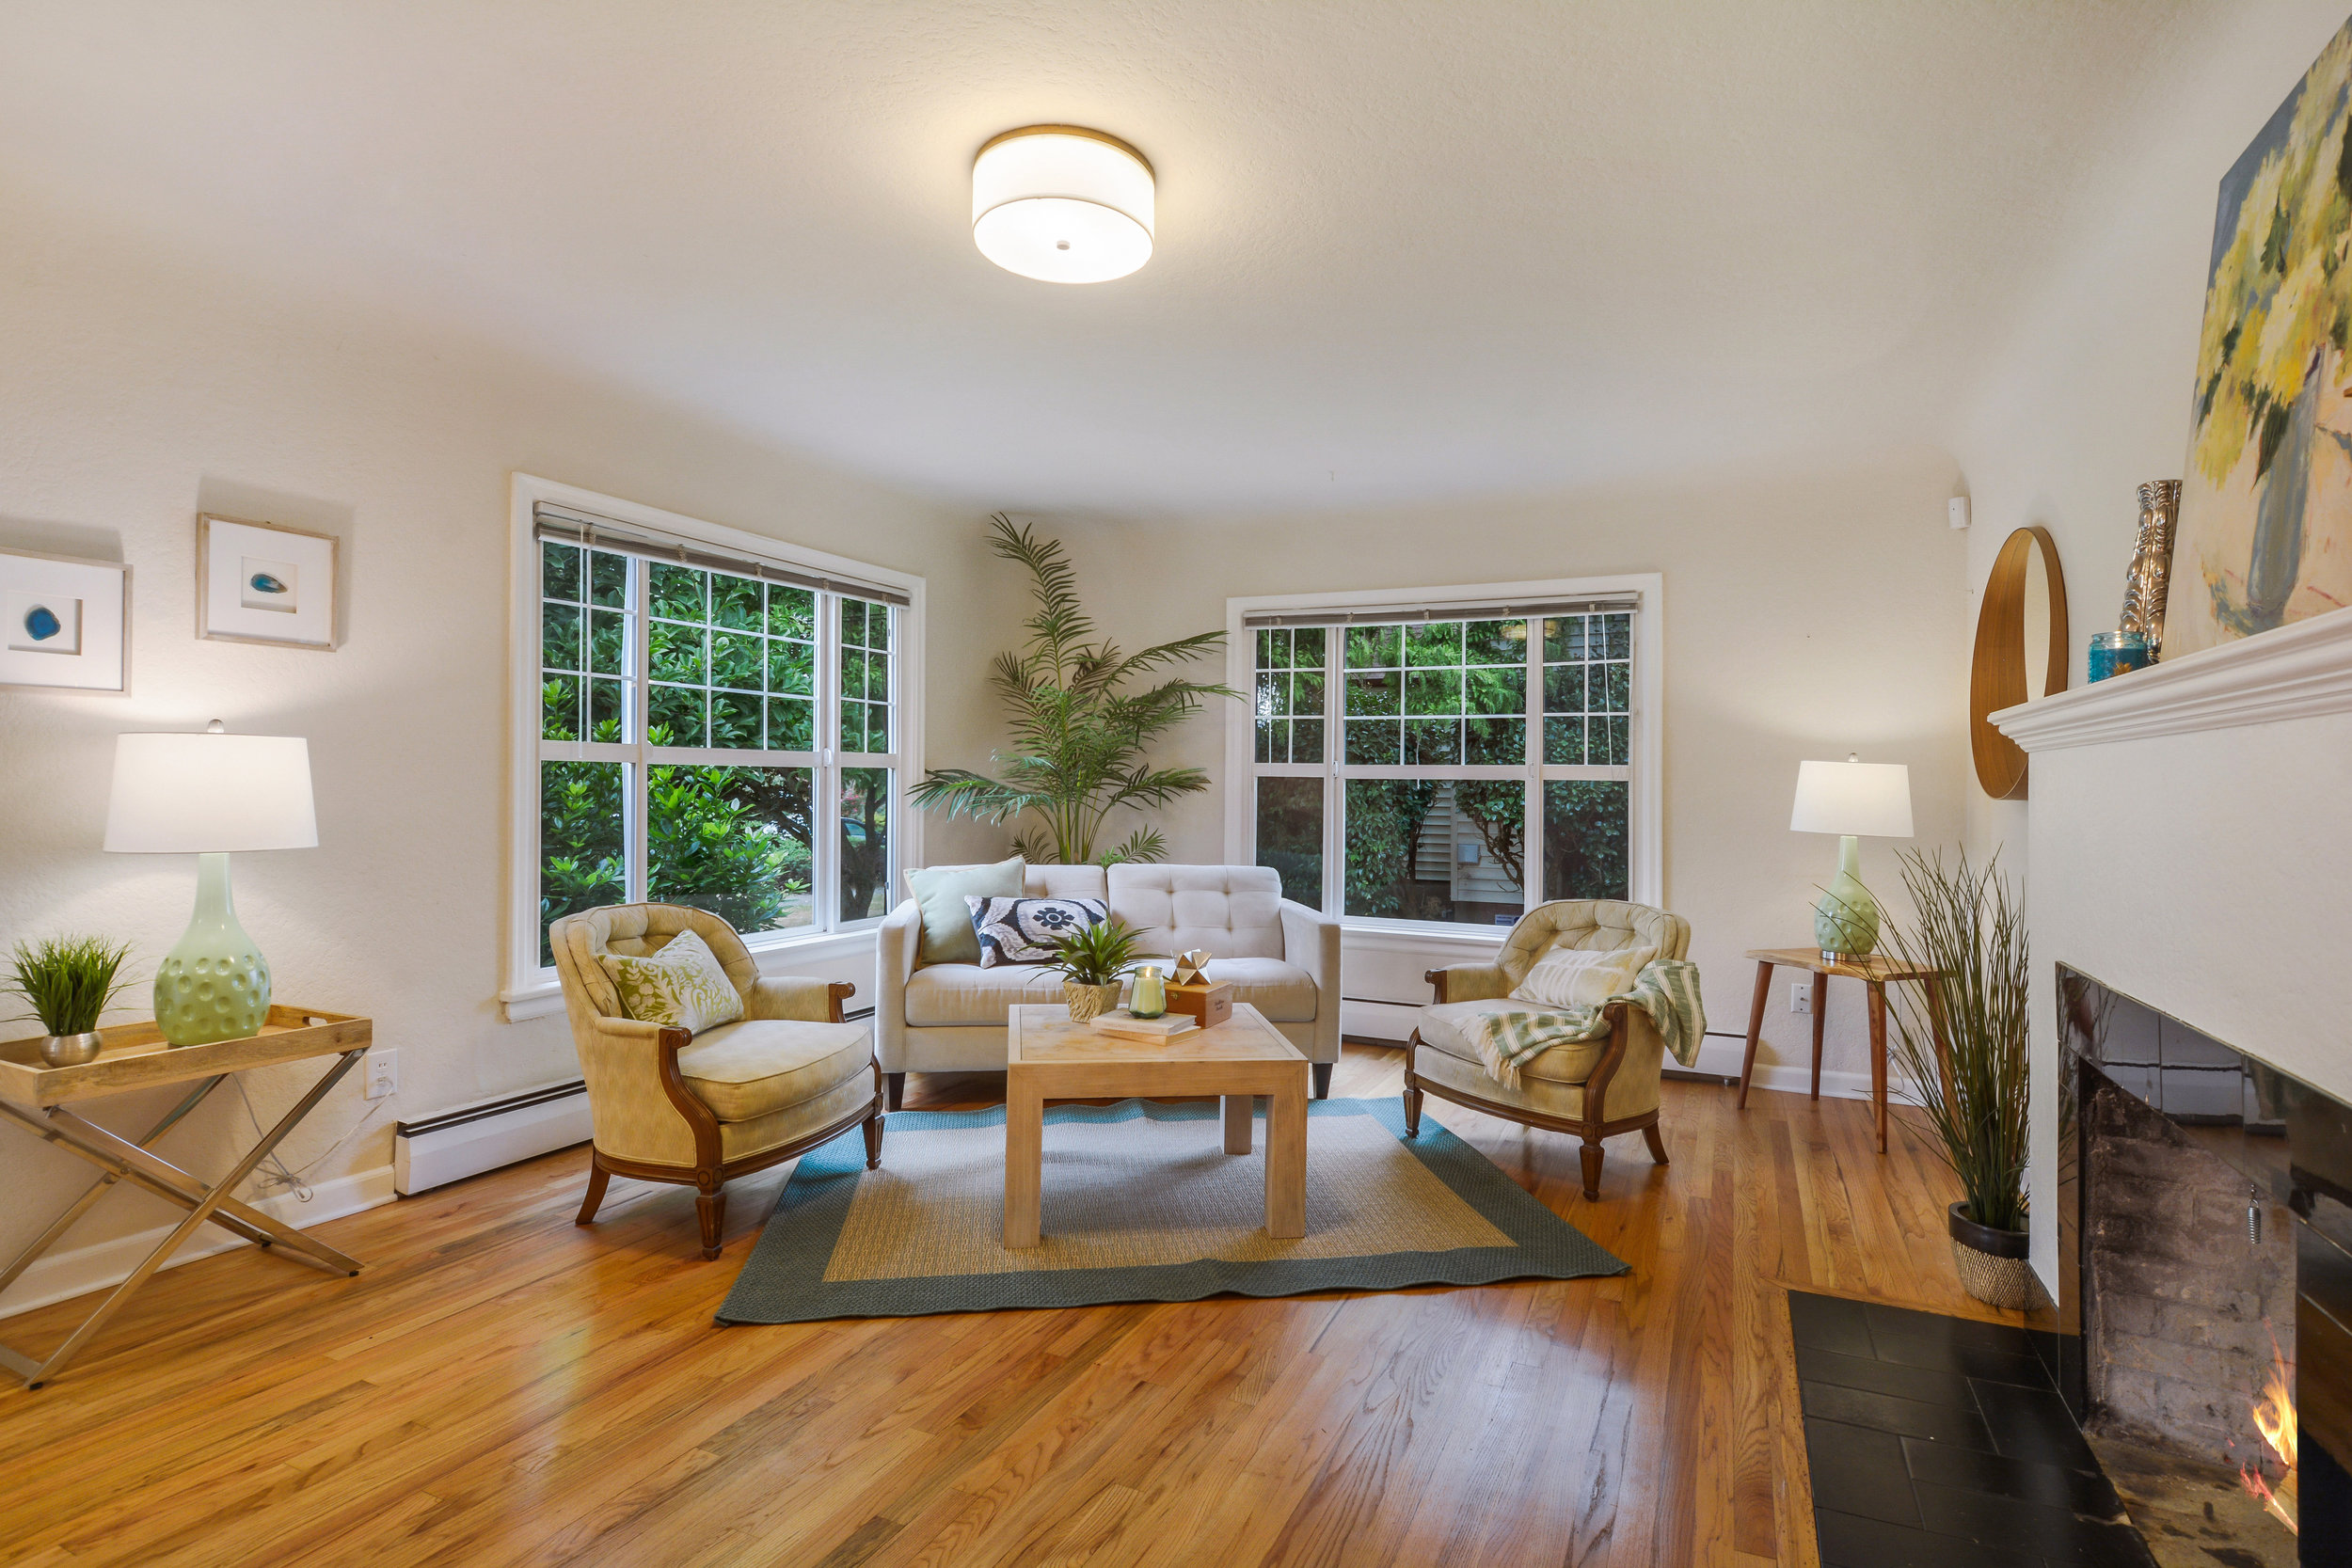 The heart of this home is a spacious, cozy living room with windows to the beautiful magnolia outside.